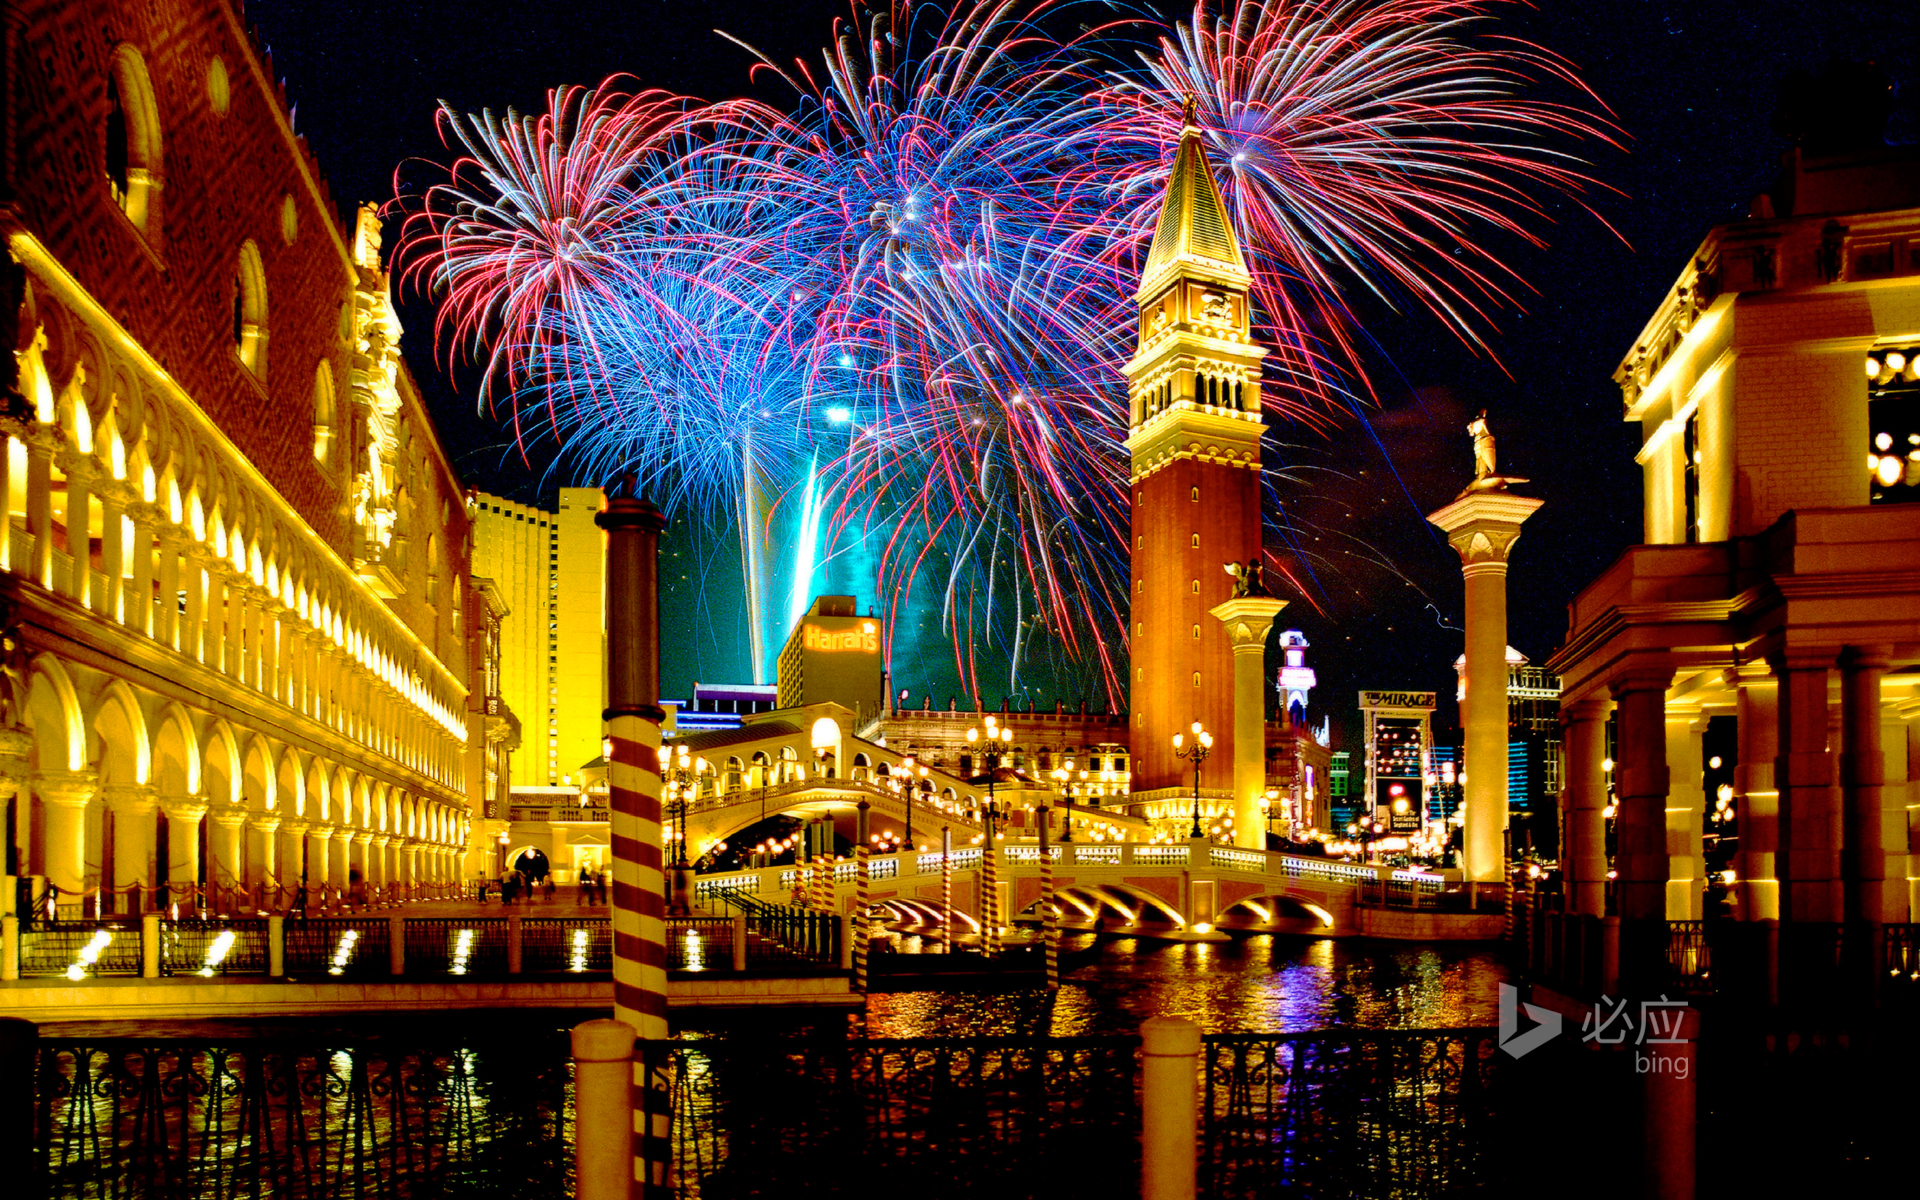 Fireworks over the Venetian Hotel in Las Vegas, USA